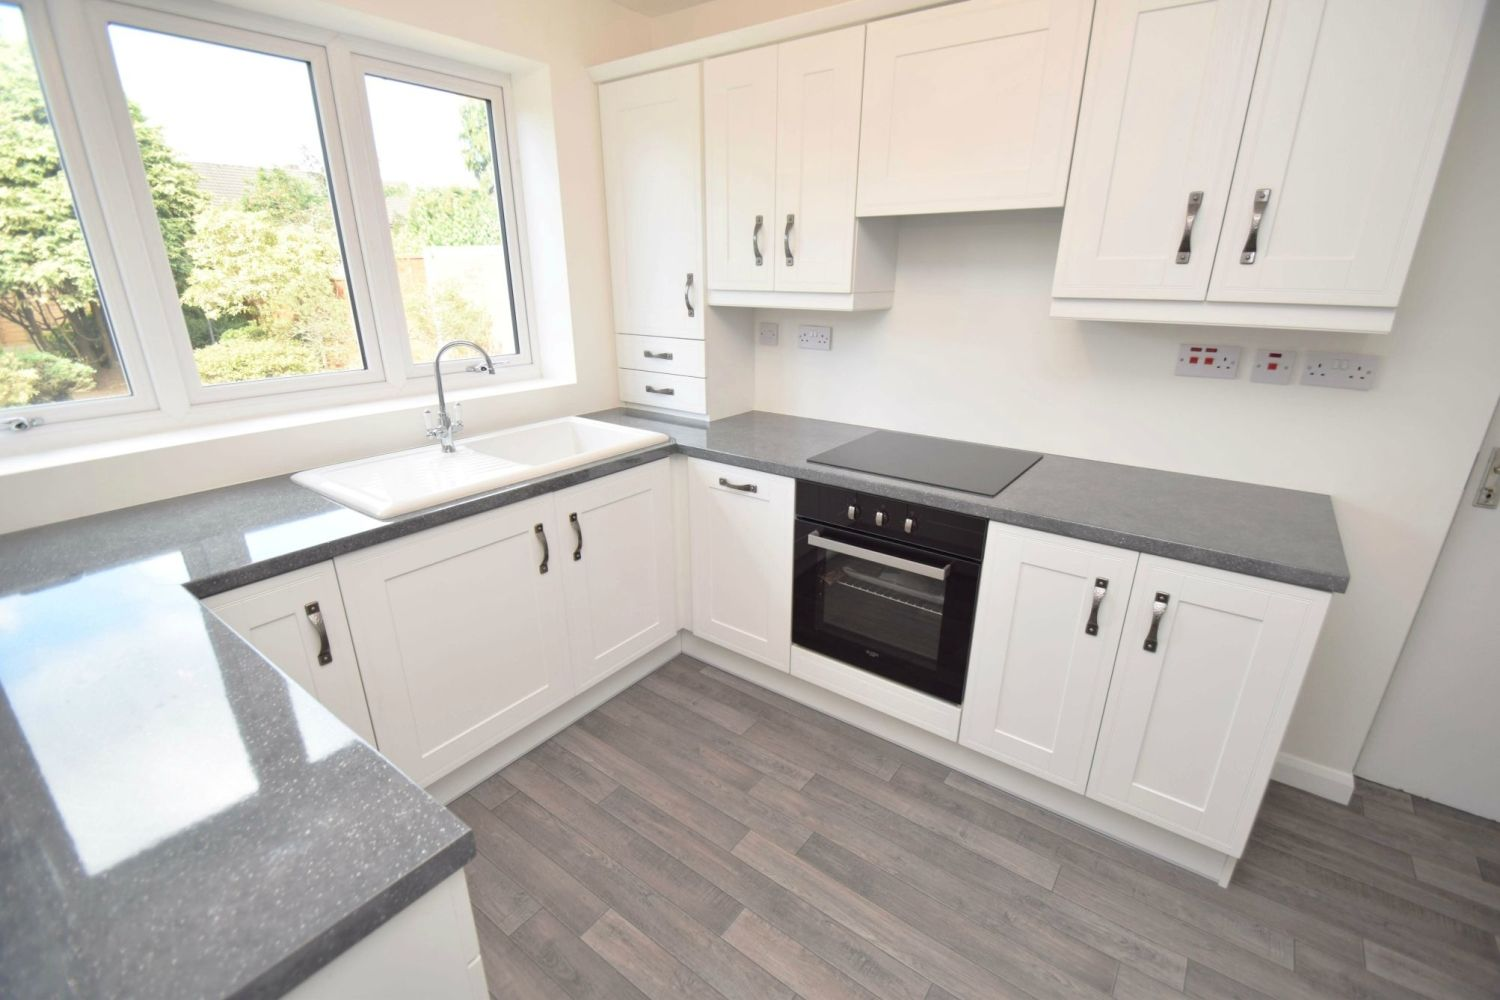 3 bed semi-detached for sale in Beachcroft Road, Wall Heath  - Property Image 6